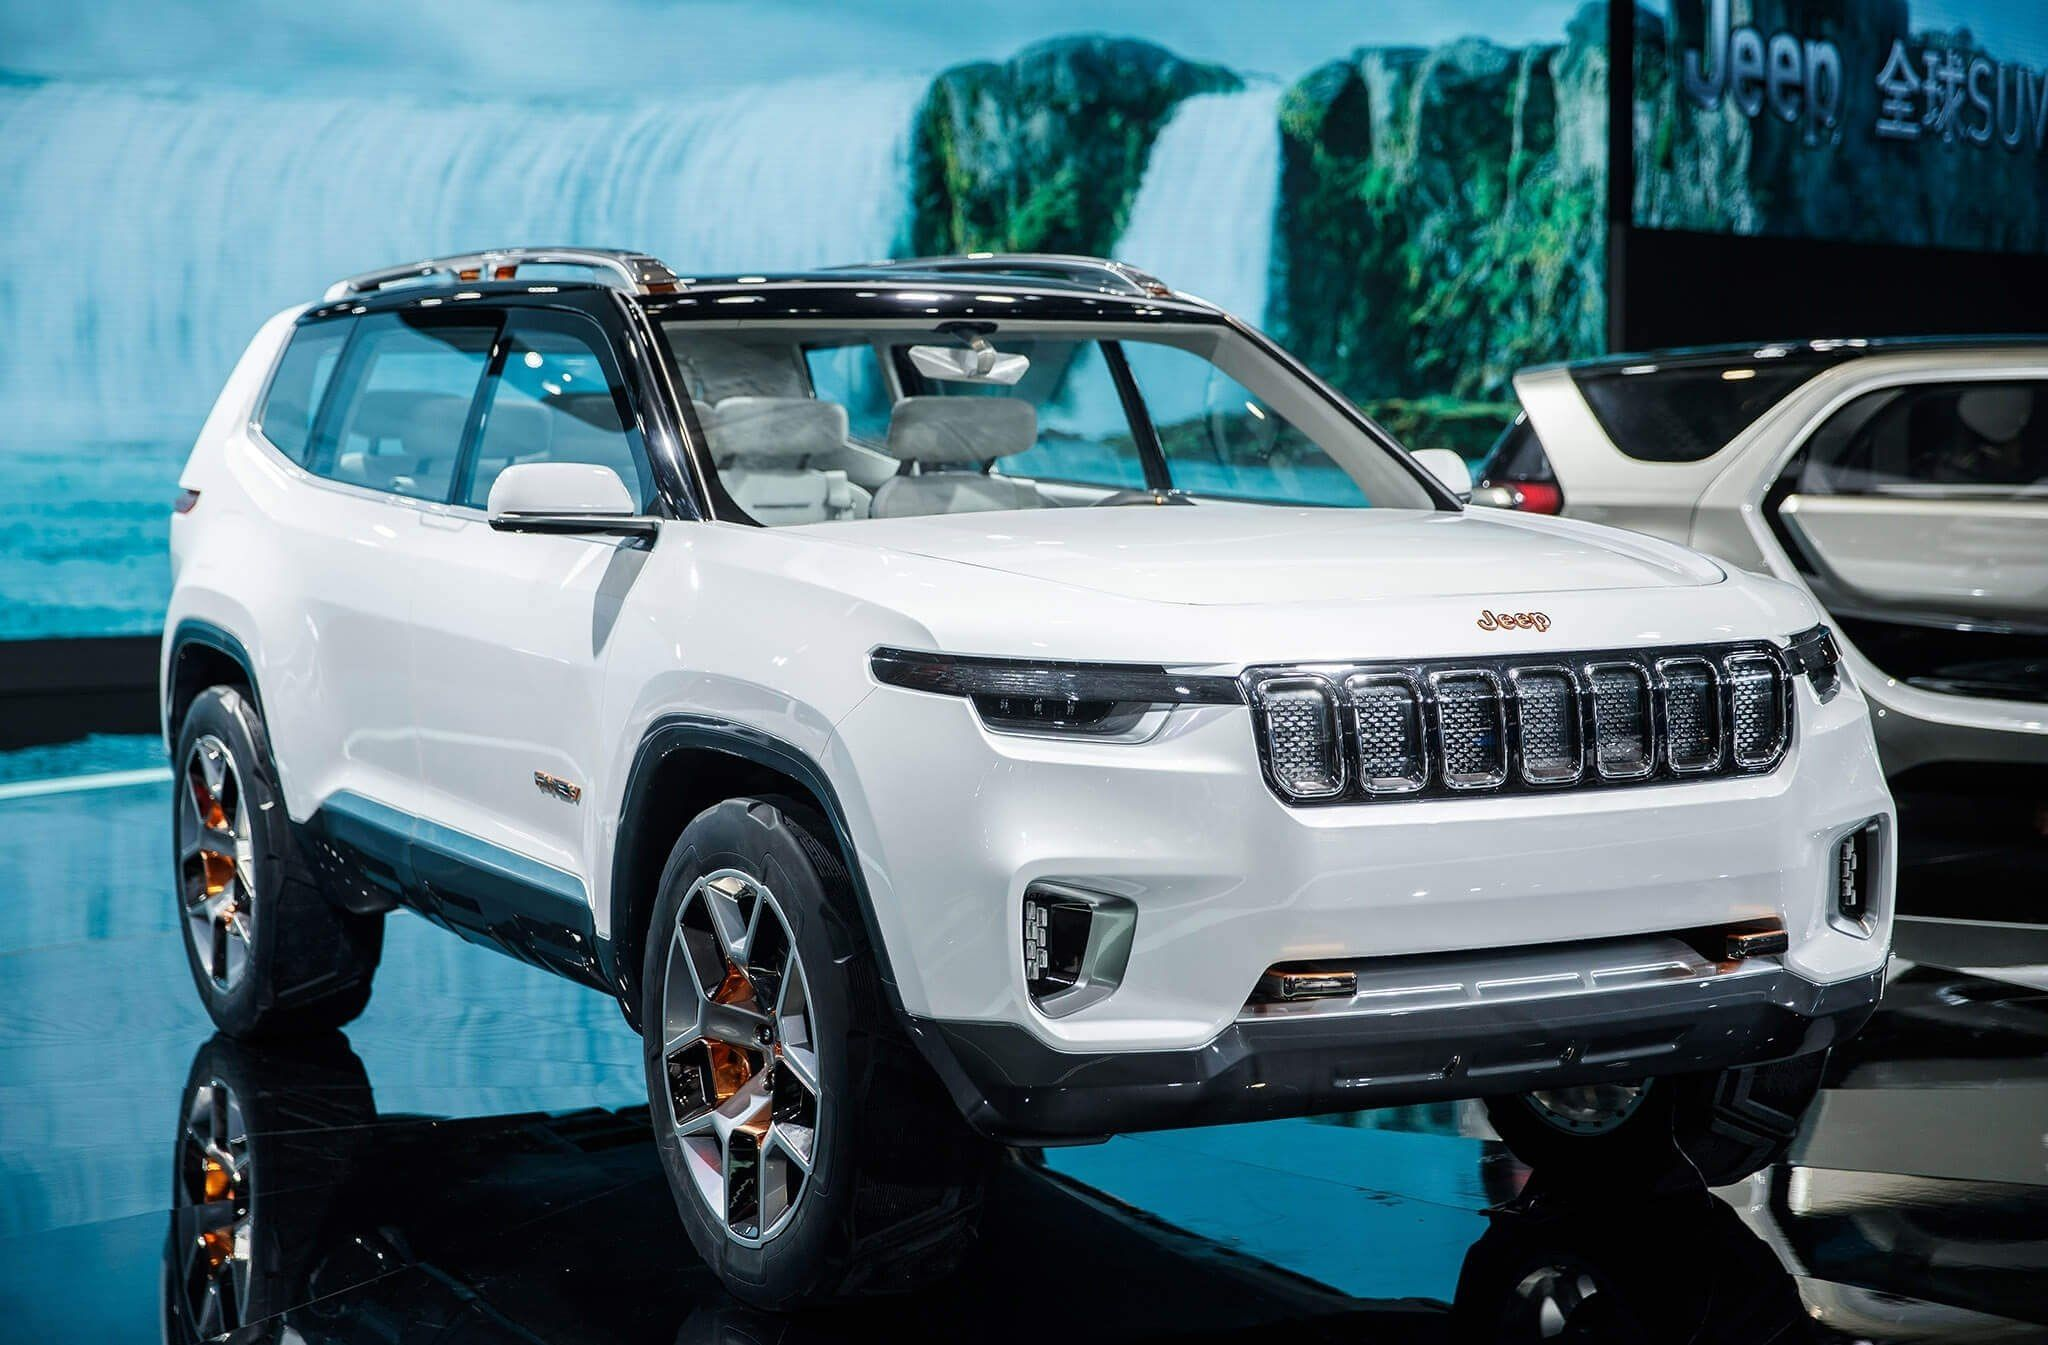 2020 Jeep Grand Cherokee New Review Concept Car 2019 With Regard To 2020 Jeep Grand Cherokee Jeep Concept Jeep Grand Cherokee Jeep Grand